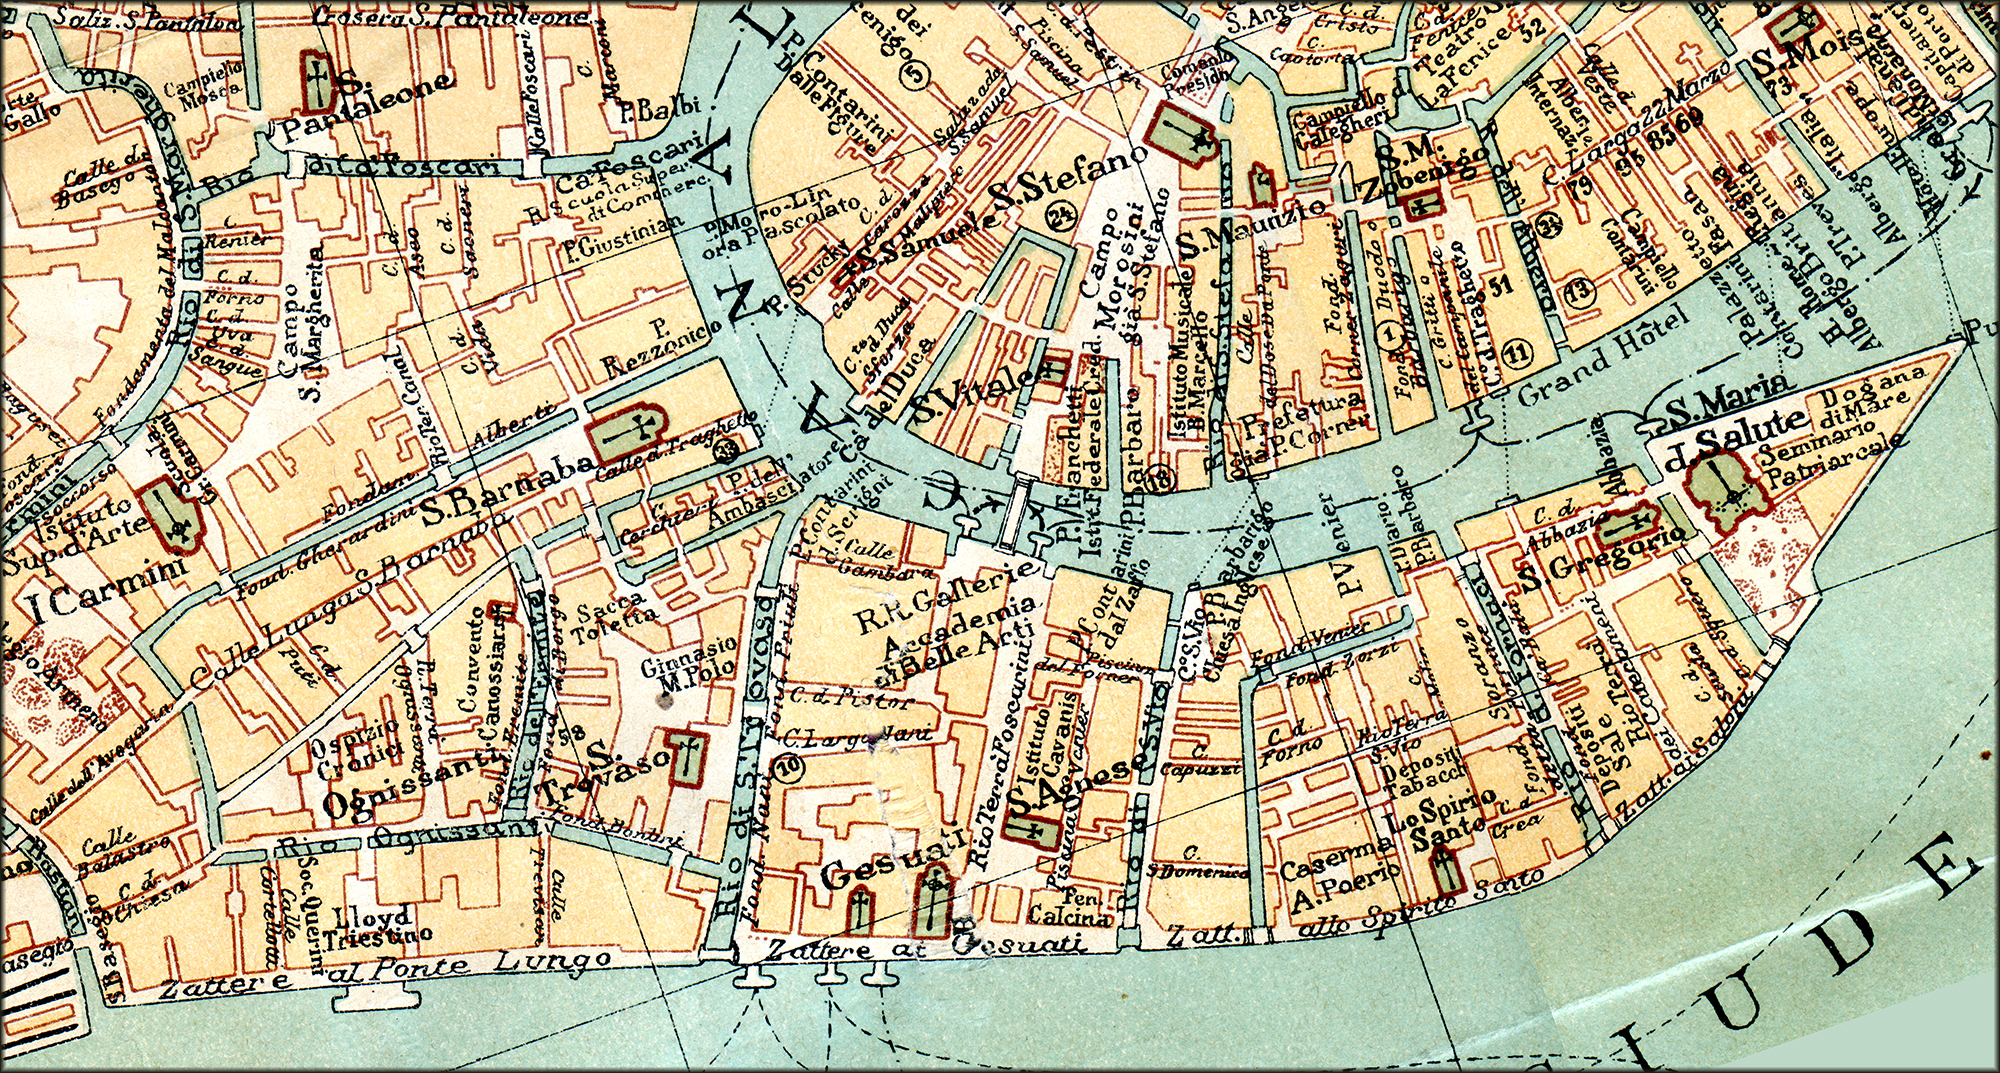 Free Maps Of Venice - Venice map image